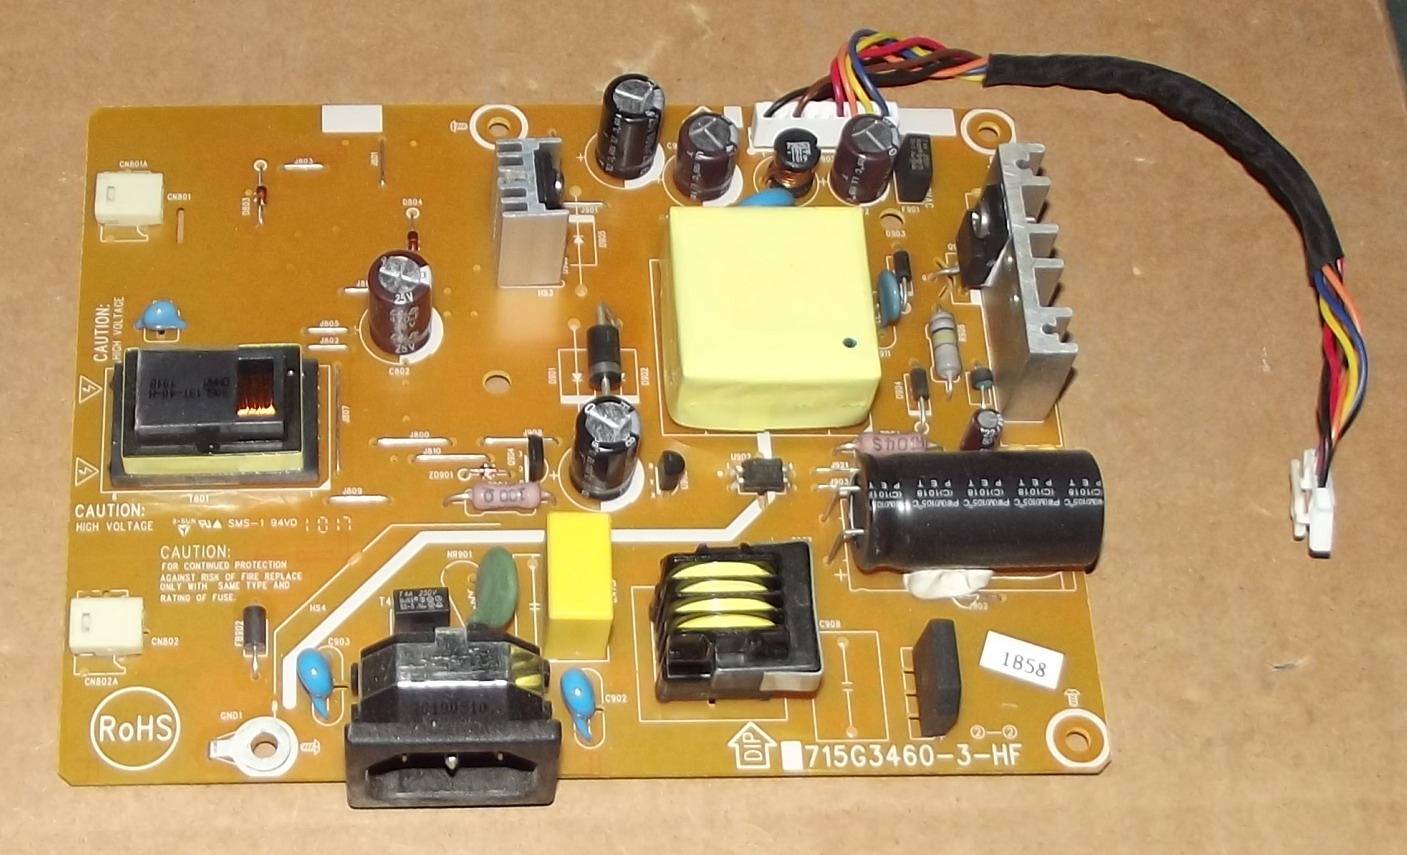 715G3460-3-HF LCD power inverter board